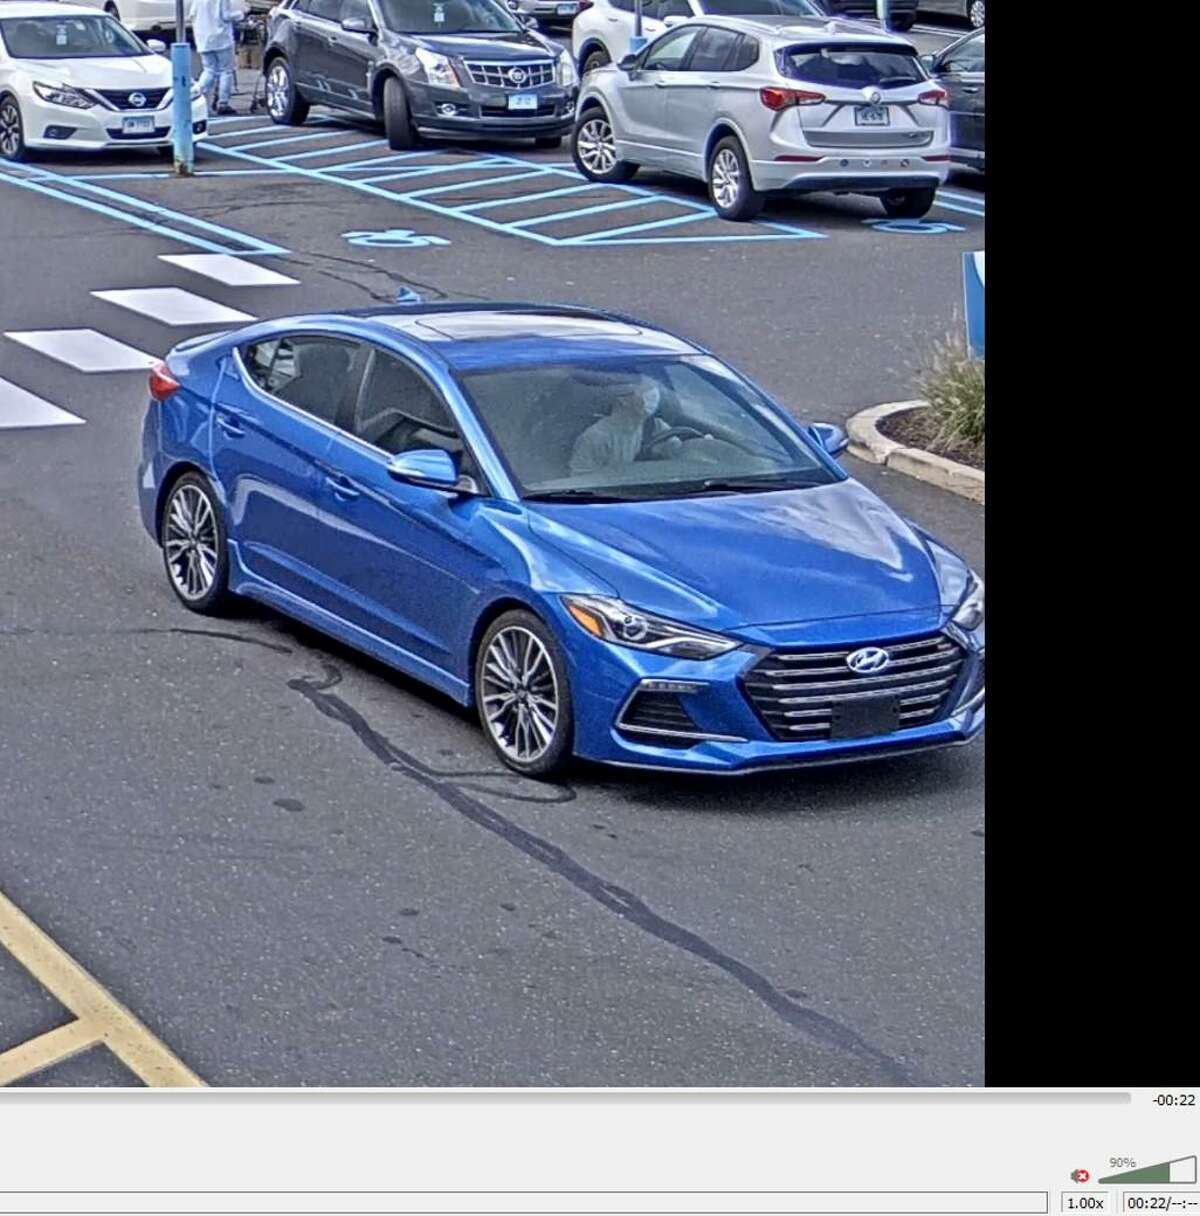 Police said the suspect has been seen using a 2016 to 2019 blue Hyundai Elantra Sport in each incident.